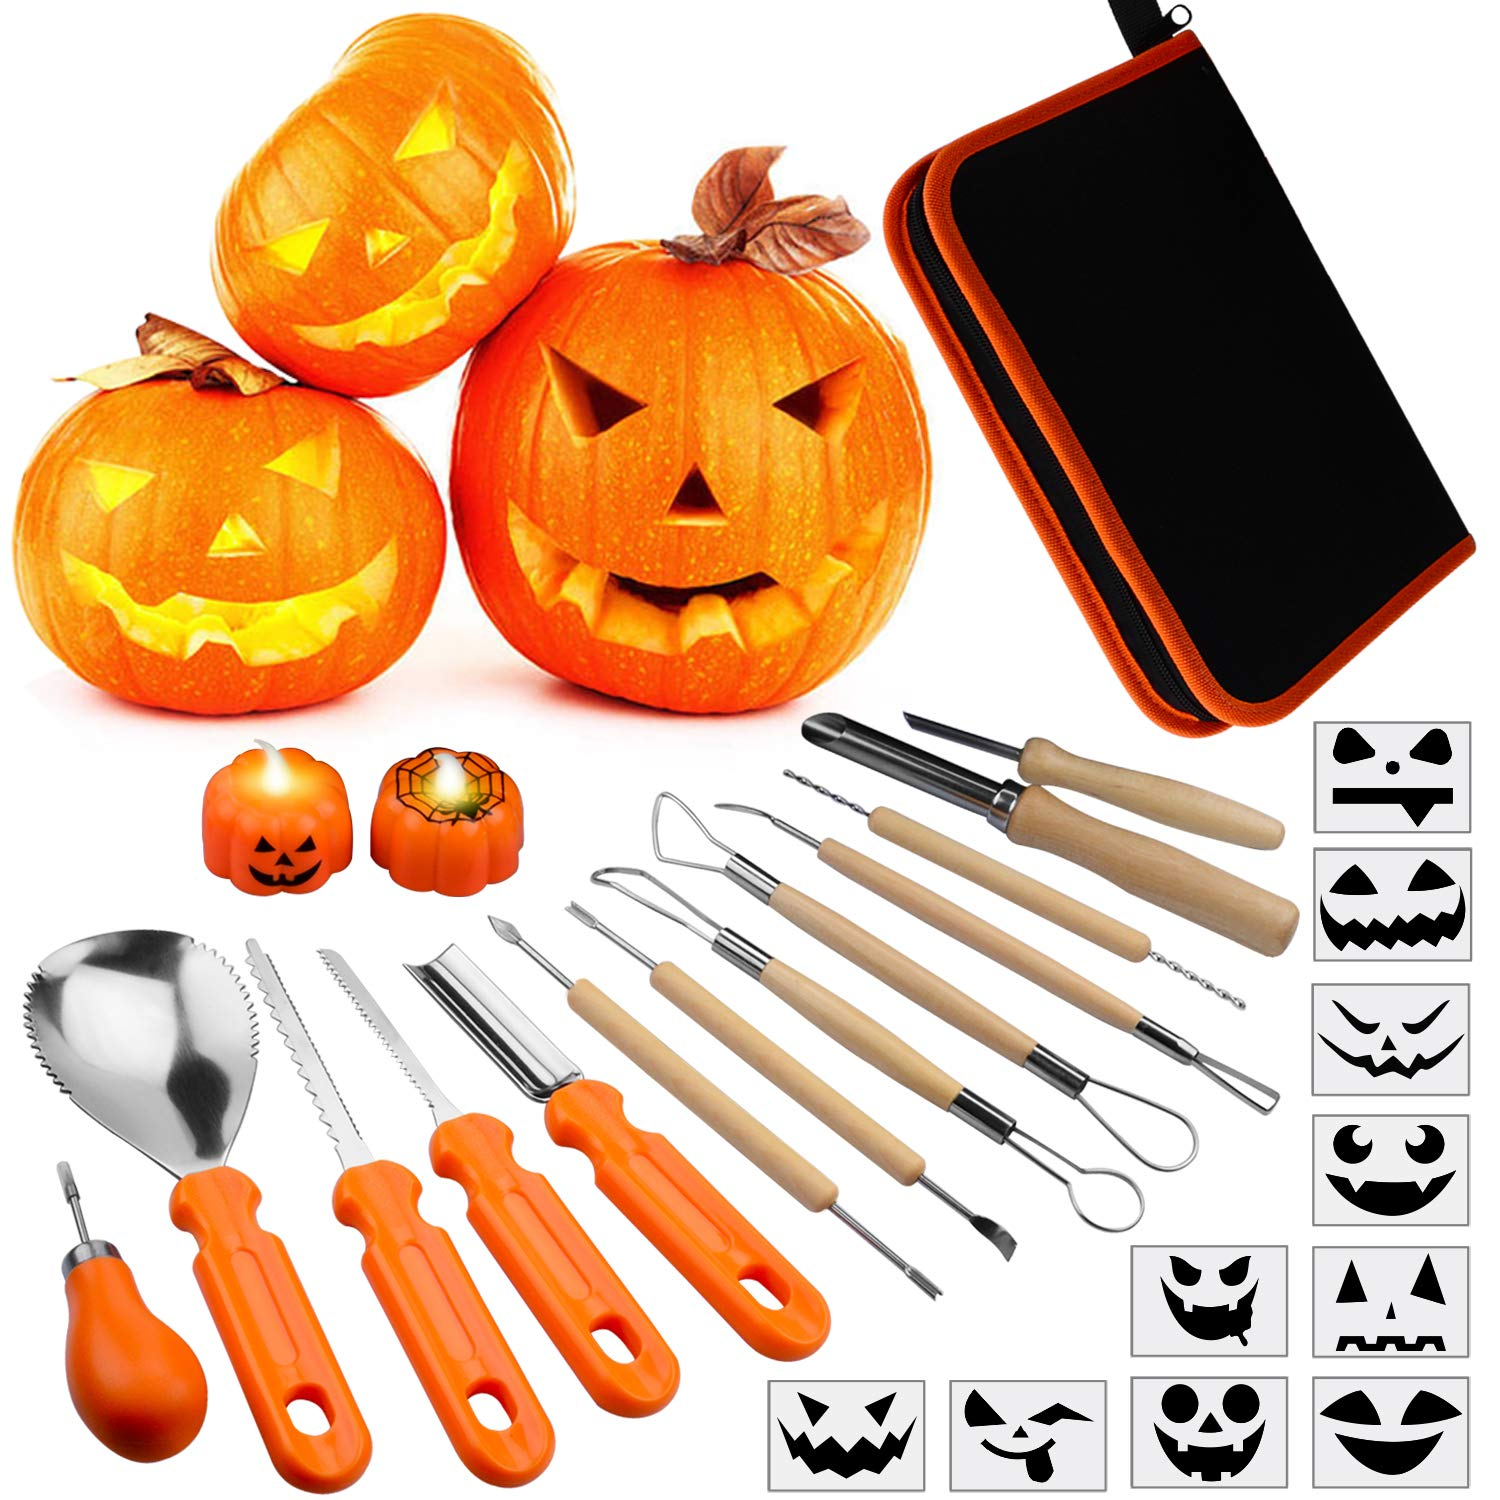 Pumpkin Carving Kit for Kids, 13 Pieces Halloween Pumpkin Carving Tools Set, 2 LED Pumpkin Candles & 10 Carving Stencils with Carrying Case Halloween Decorations by OPPMART